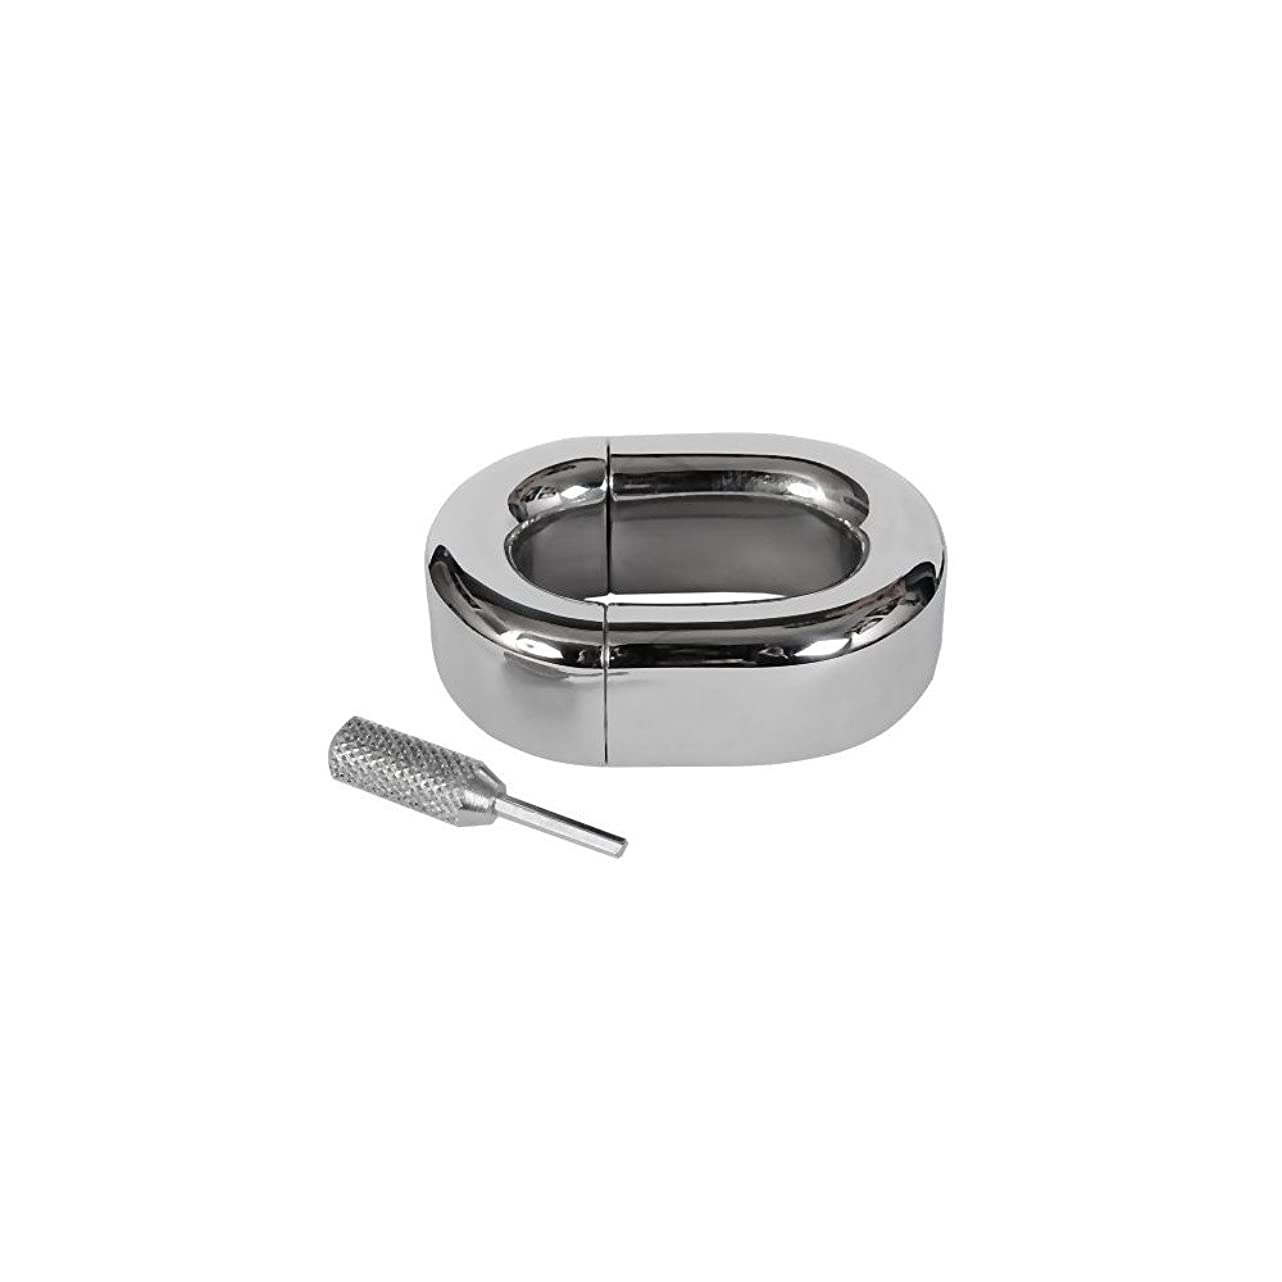 TheChainGang Rounded Oval Ball Stretcher, Surgical Steel Ball Weights Stretchers tbr448499003009